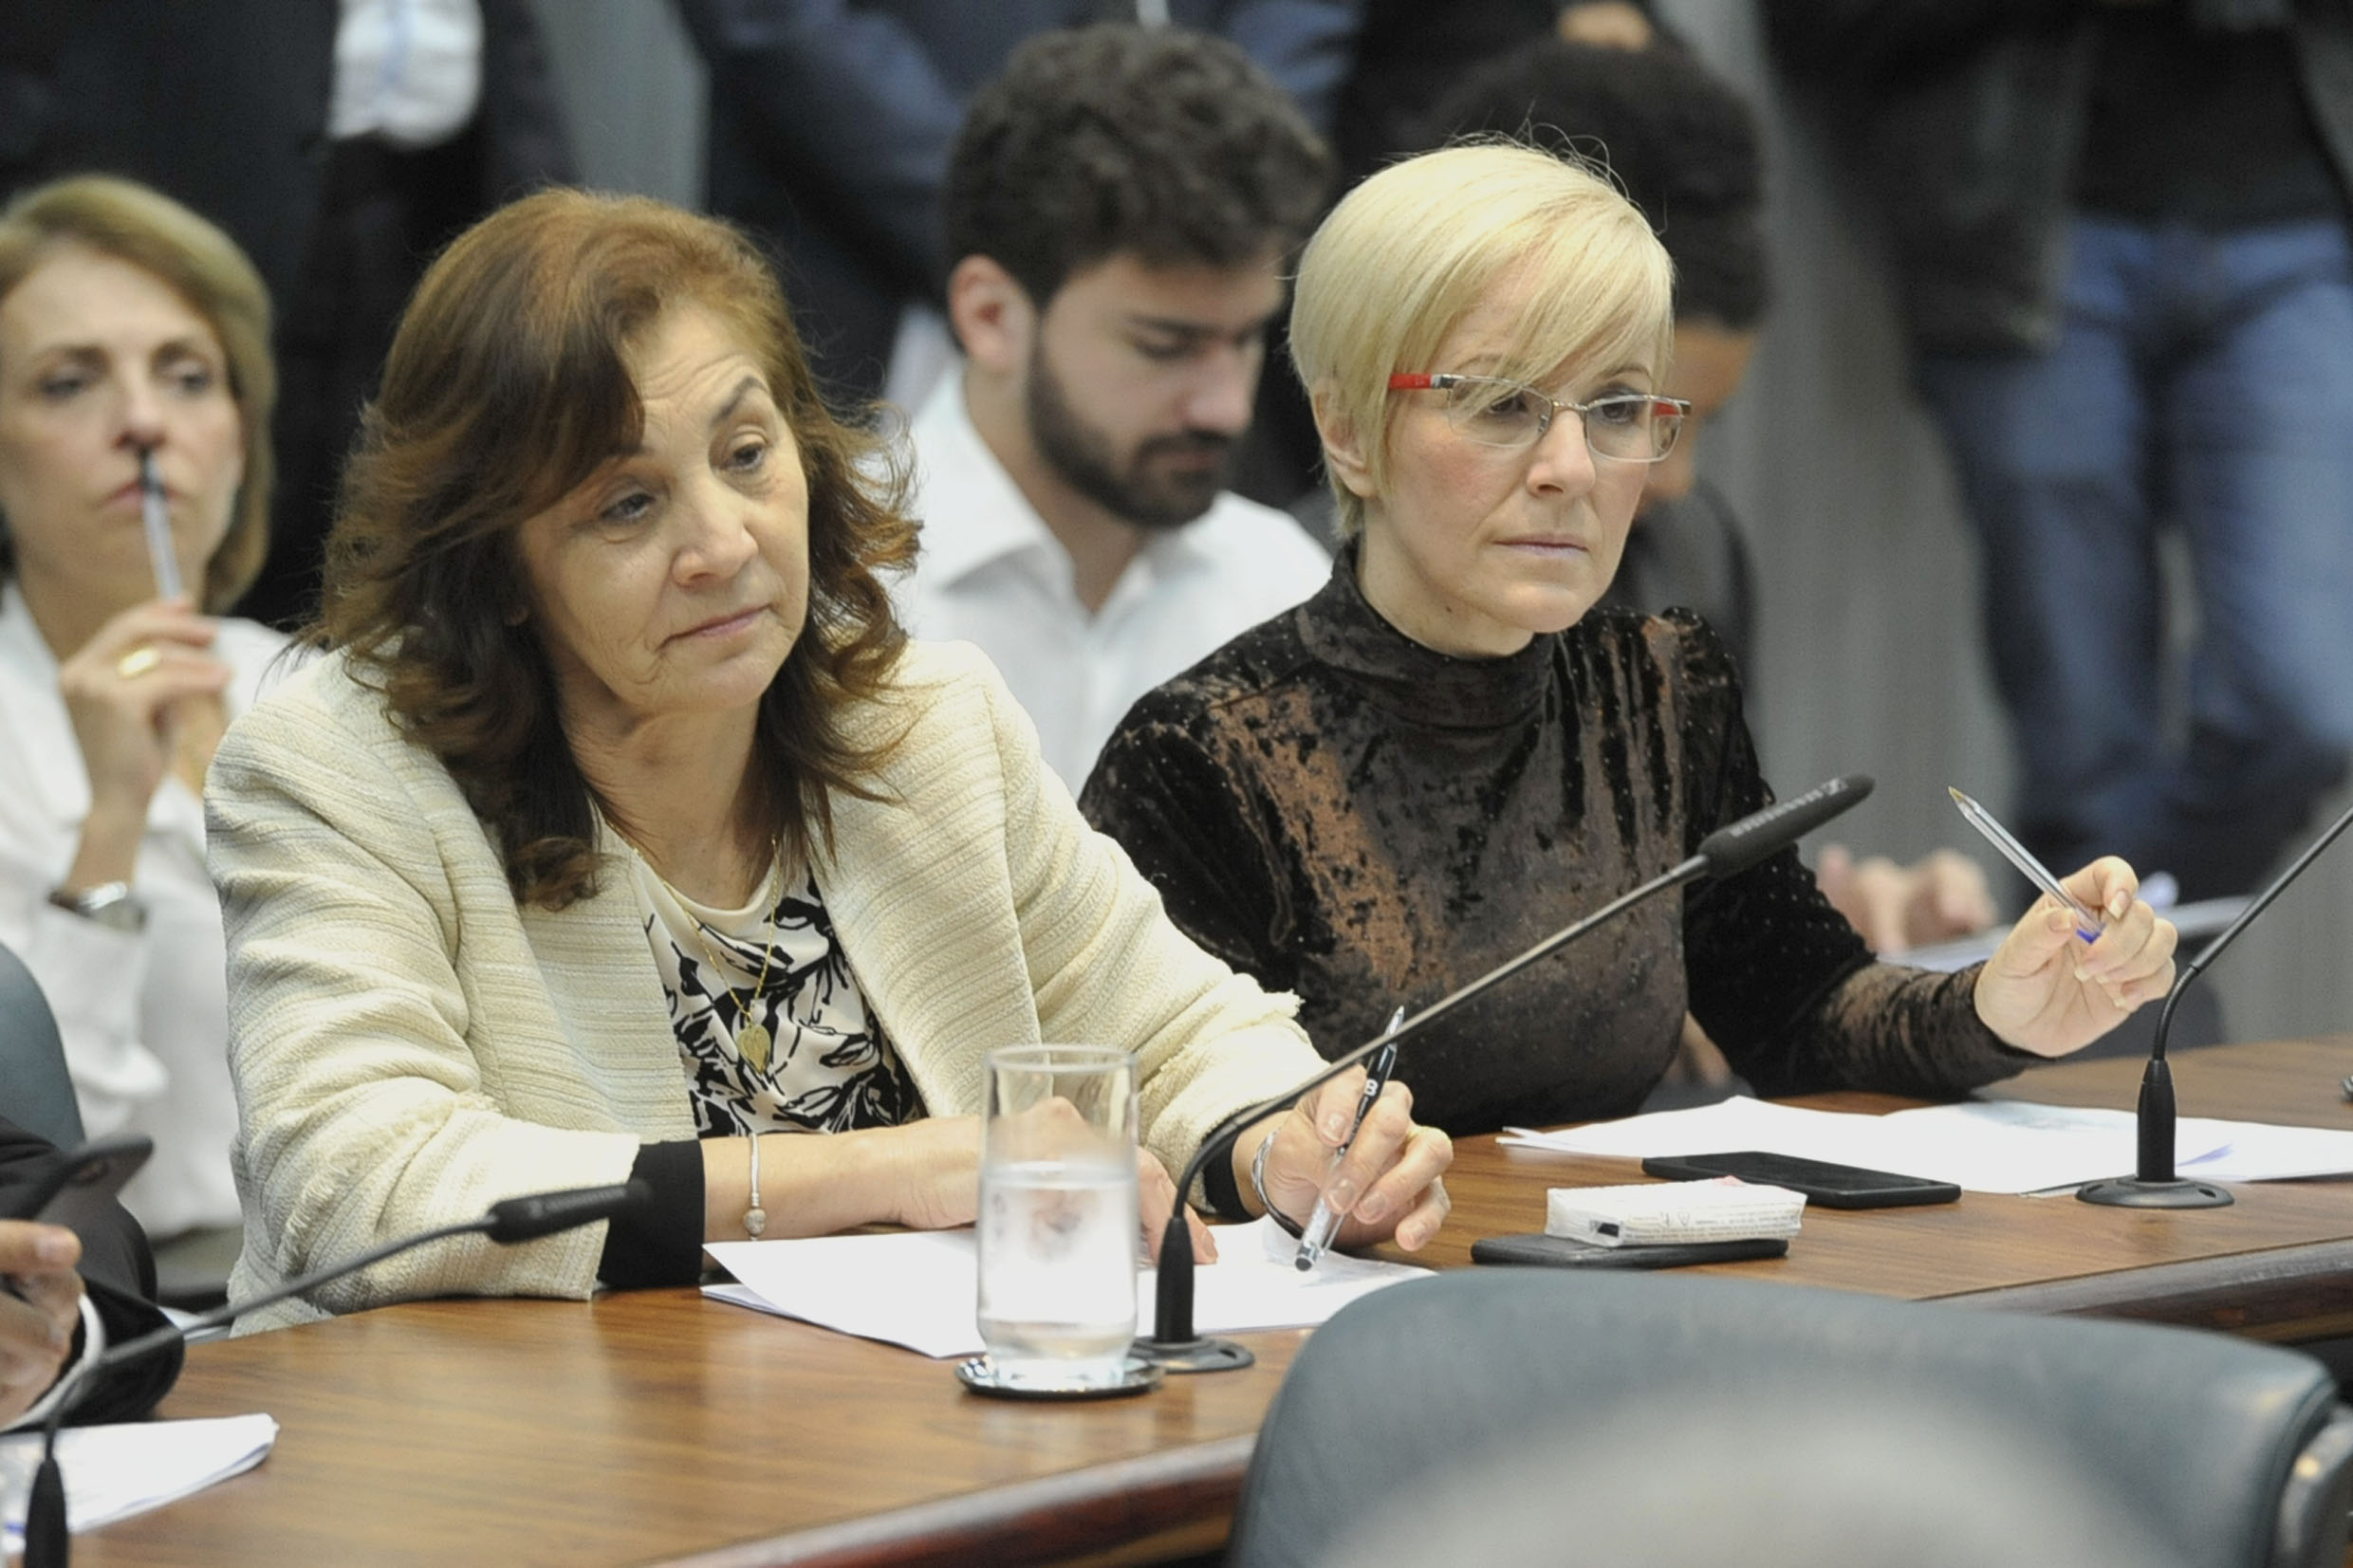 Marta Costa e Dra. Damaris Moura<a style='float:right' href='https://www3.al.sp.gov.br/repositorio/noticia/N-08-2019/fg237535.jpg' target=_blank><img src='/_img/material-file-download-white.png' width='14px' alt='Clique para baixar a imagem'></a>